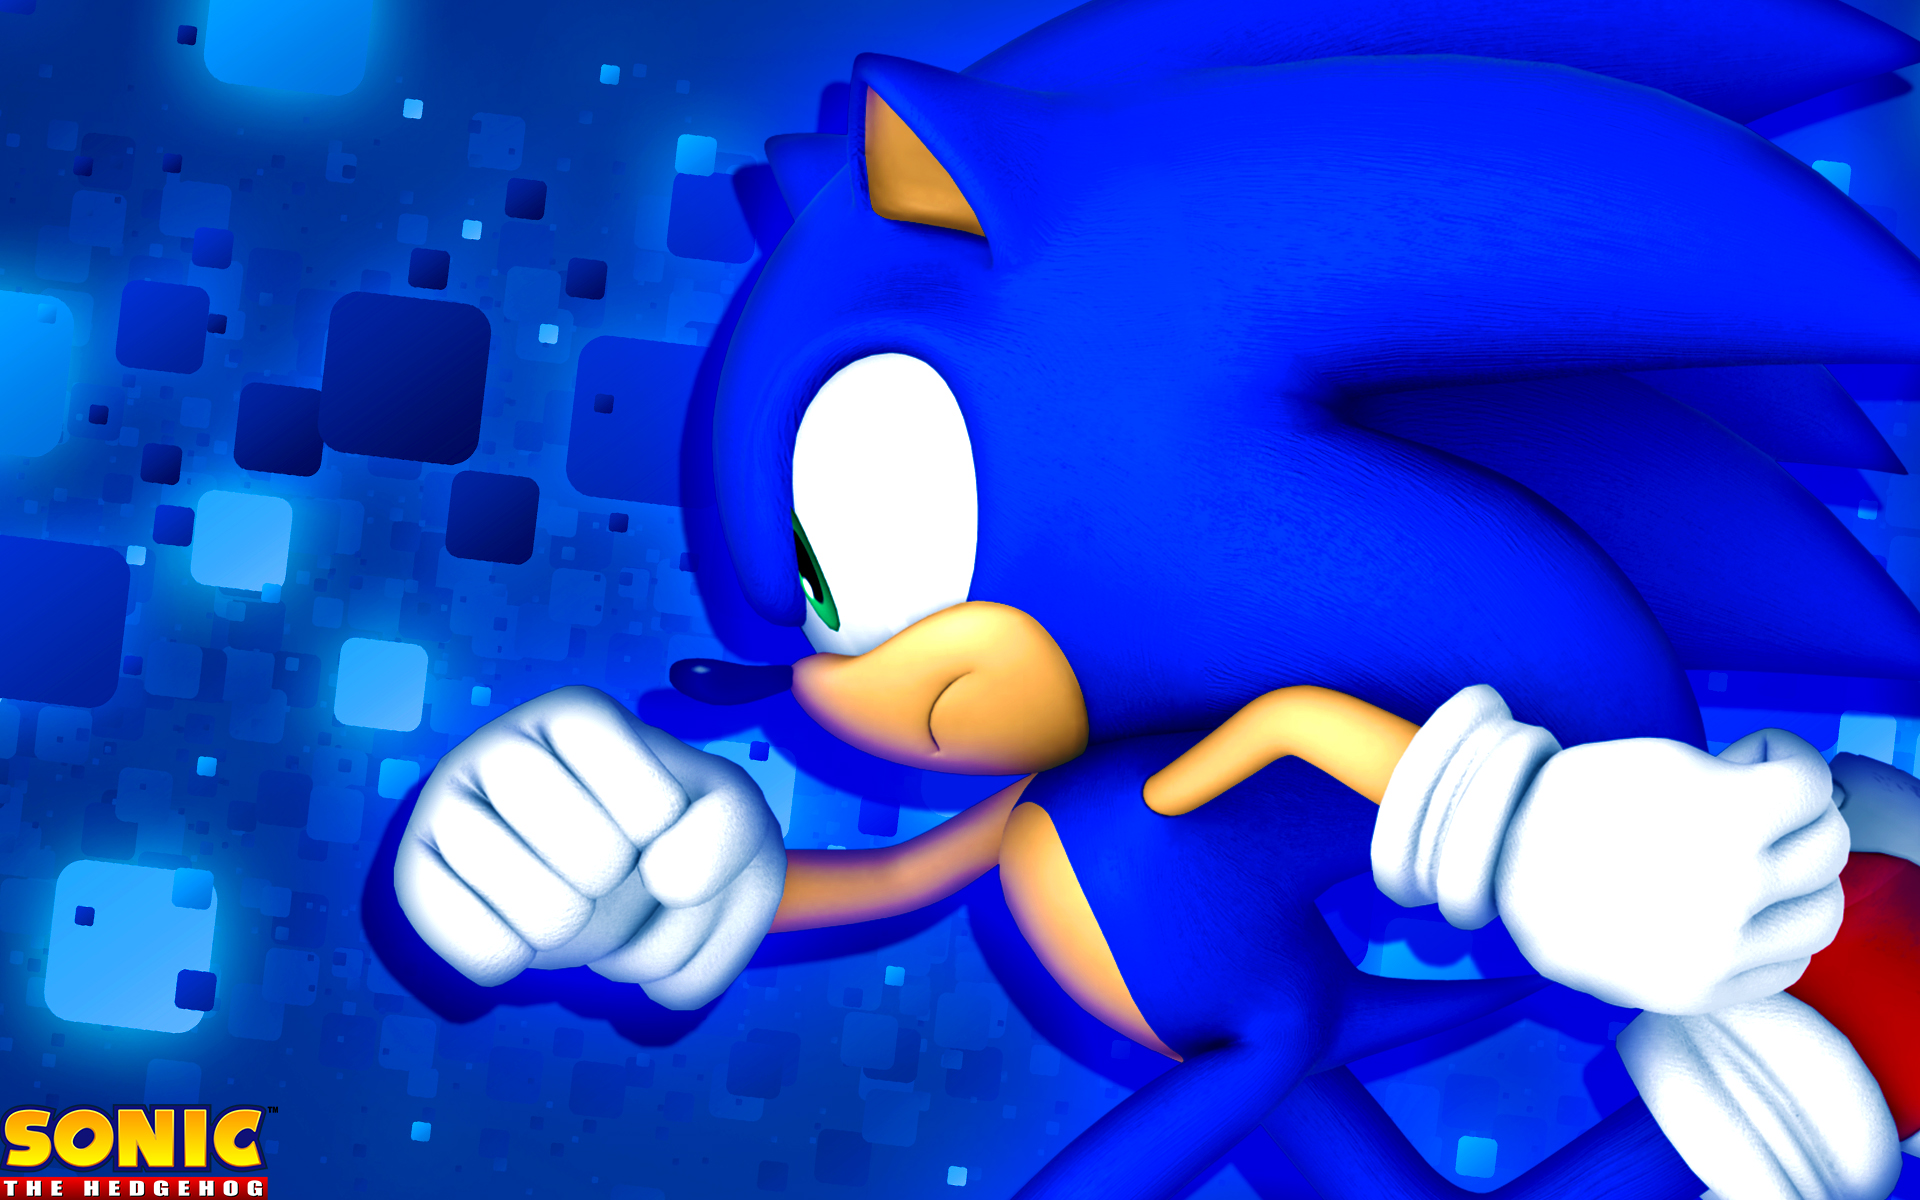 Free Download Classic Sonic The Hedgehog Blue Hd Wallpaper Cool